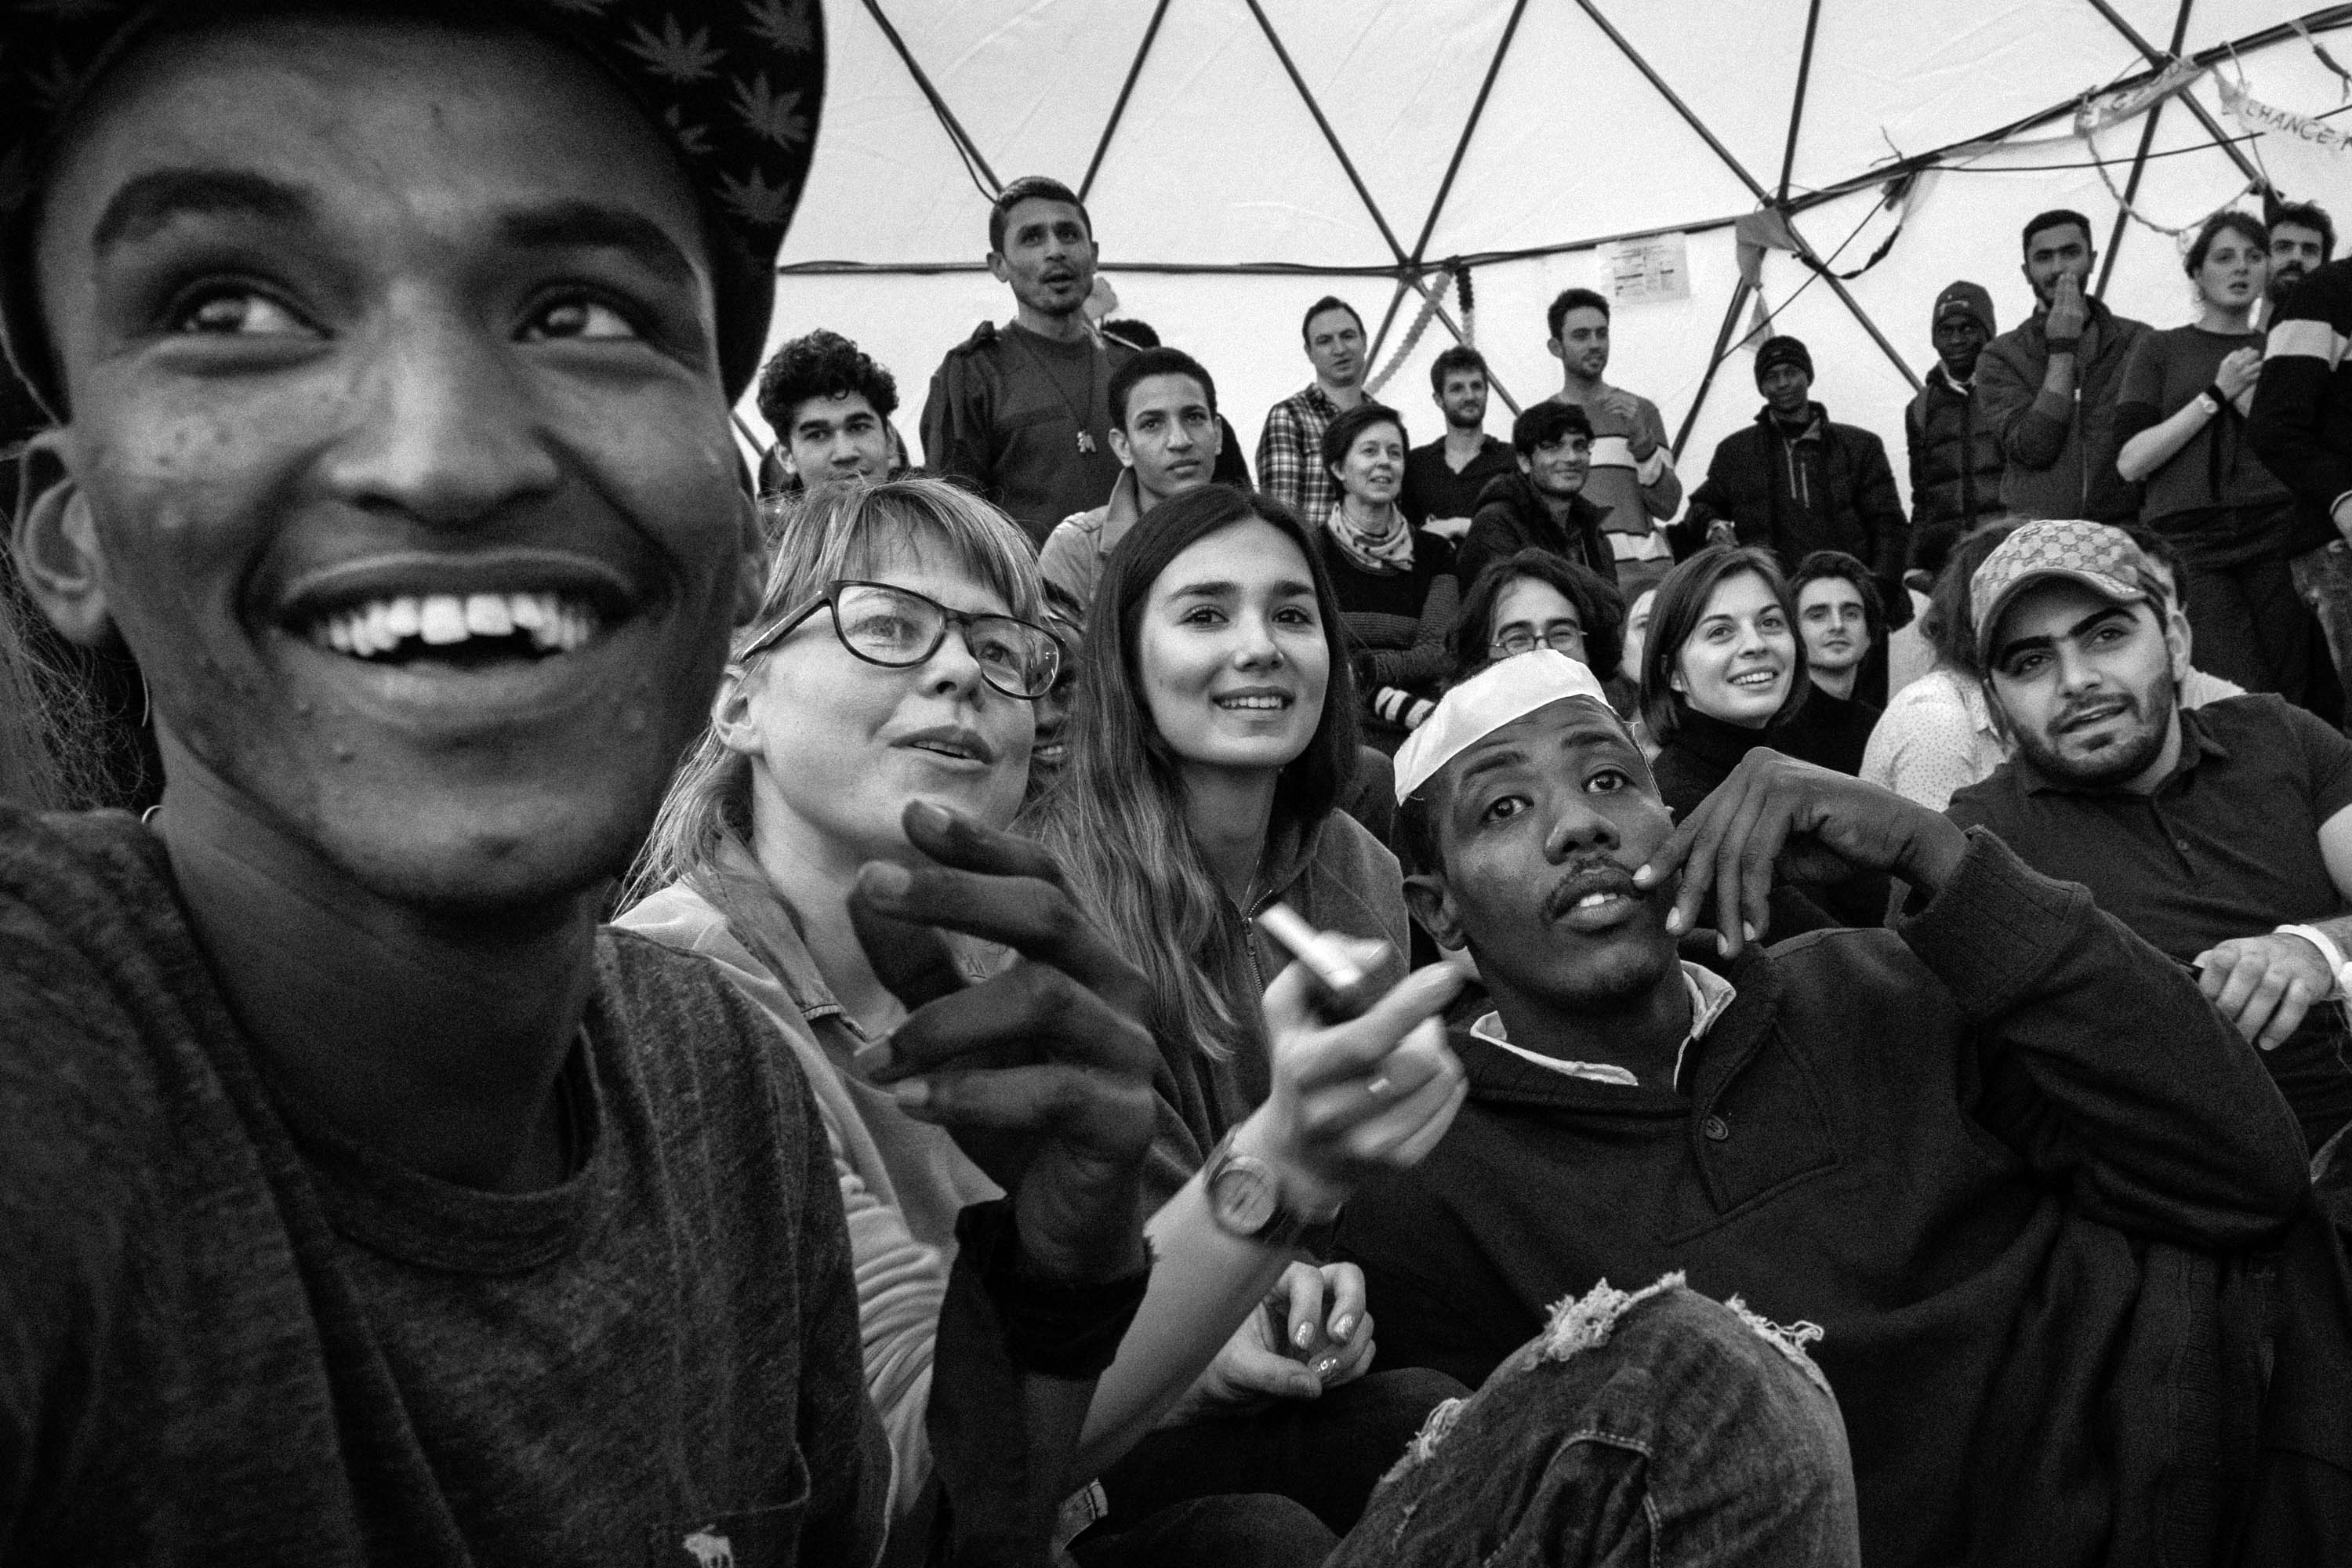 Photographer Annabelle Marcovici takes us inside the theater that popped up next door to France's first temporary shelter for asylum seekers. (Photo by Annabelle Marcovici/GroundTruth)